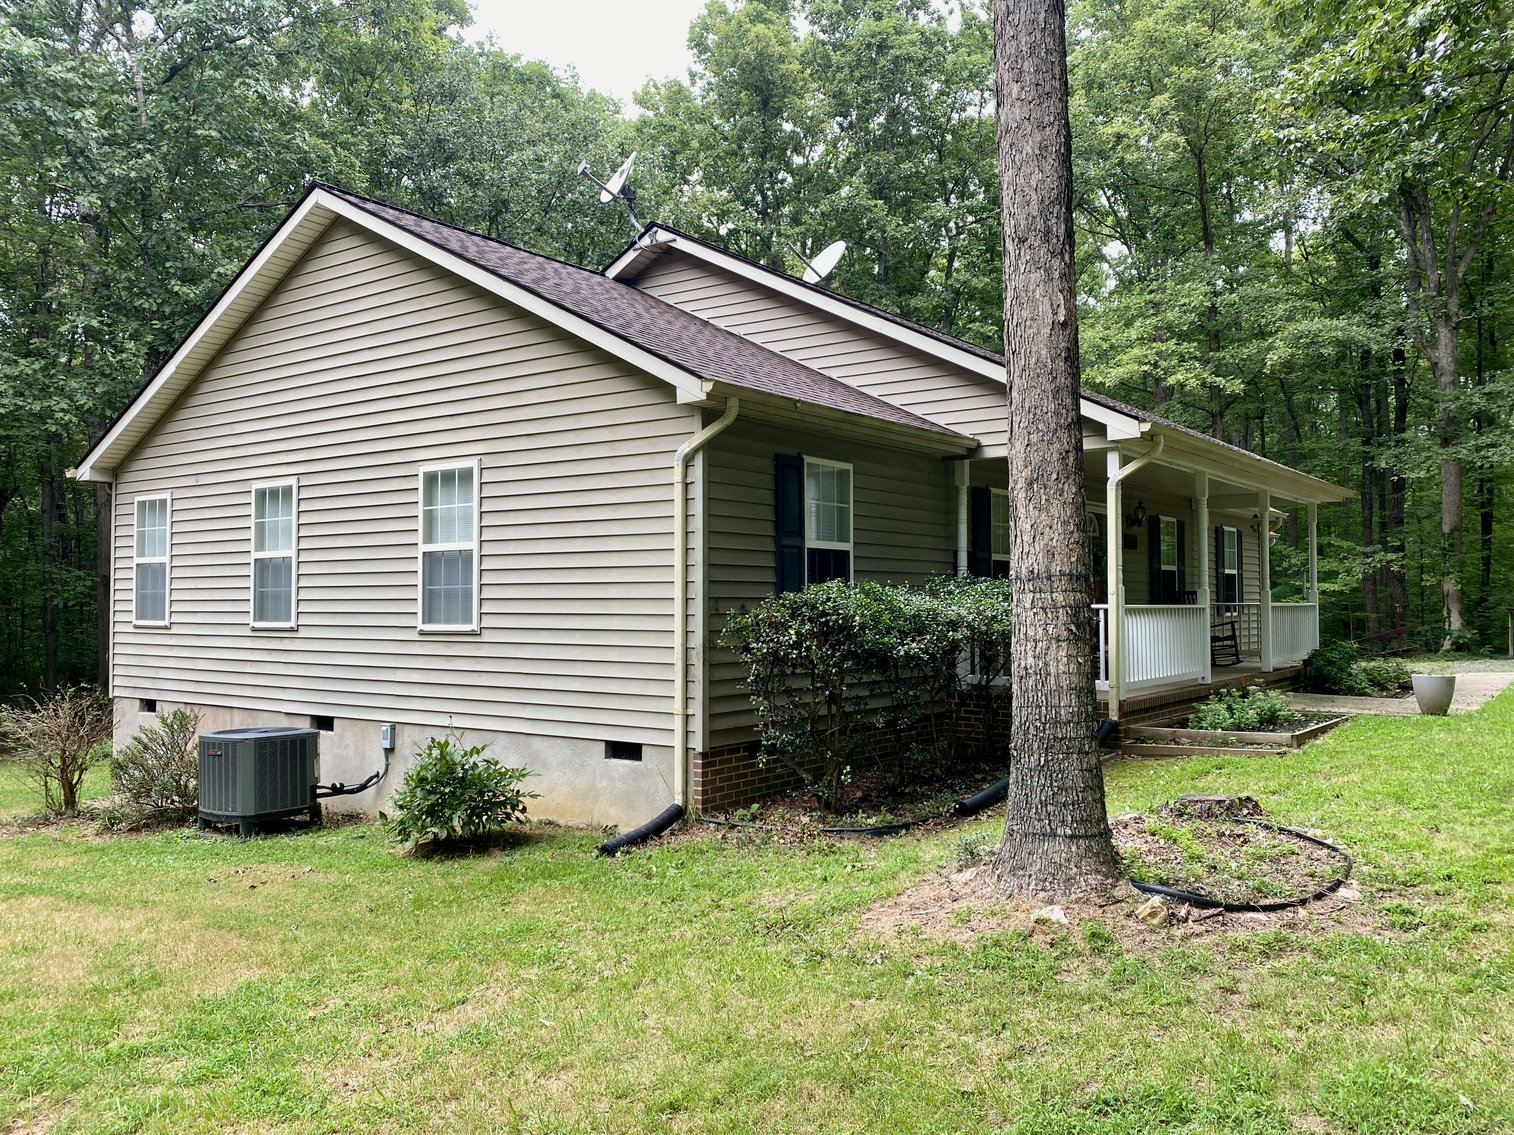 Image for  Move-In Ready 3 BR/2 BA Home on 2.48 +/- Acres in Orange County, VA--SELLING to the HIGHEST BIDDER!!